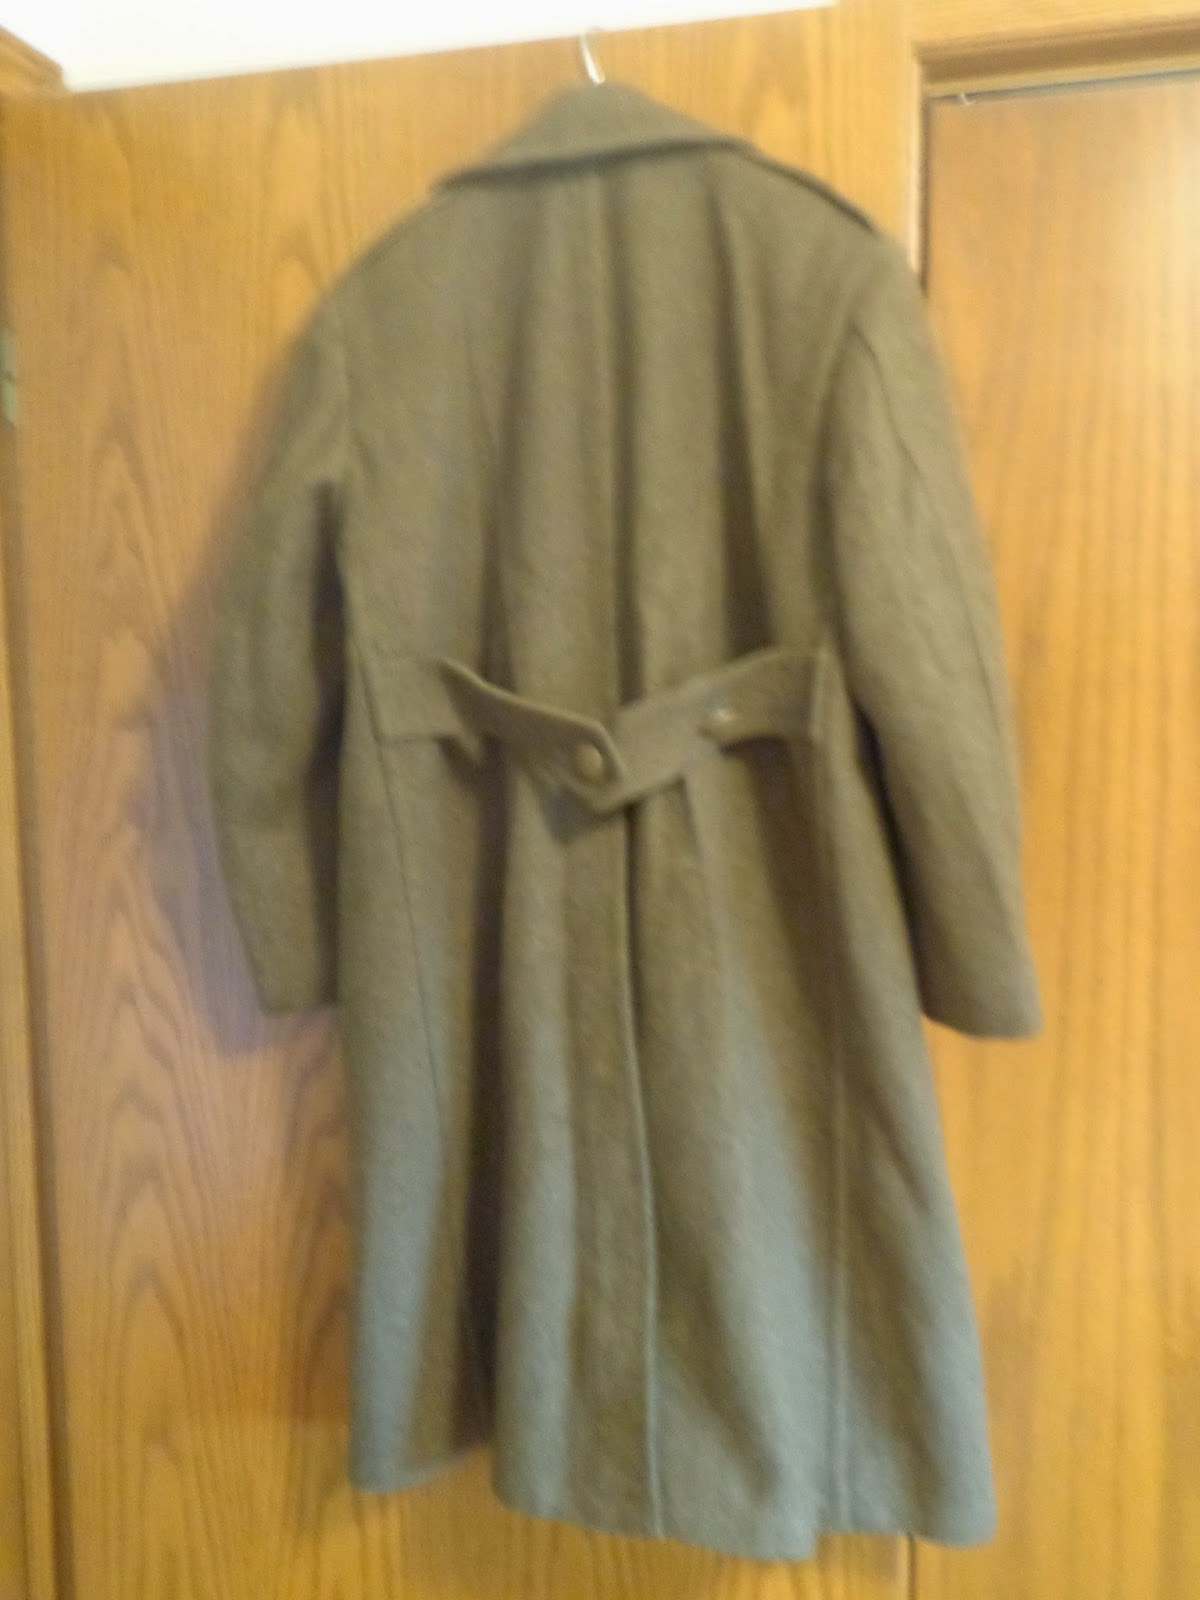 the trench coat back view